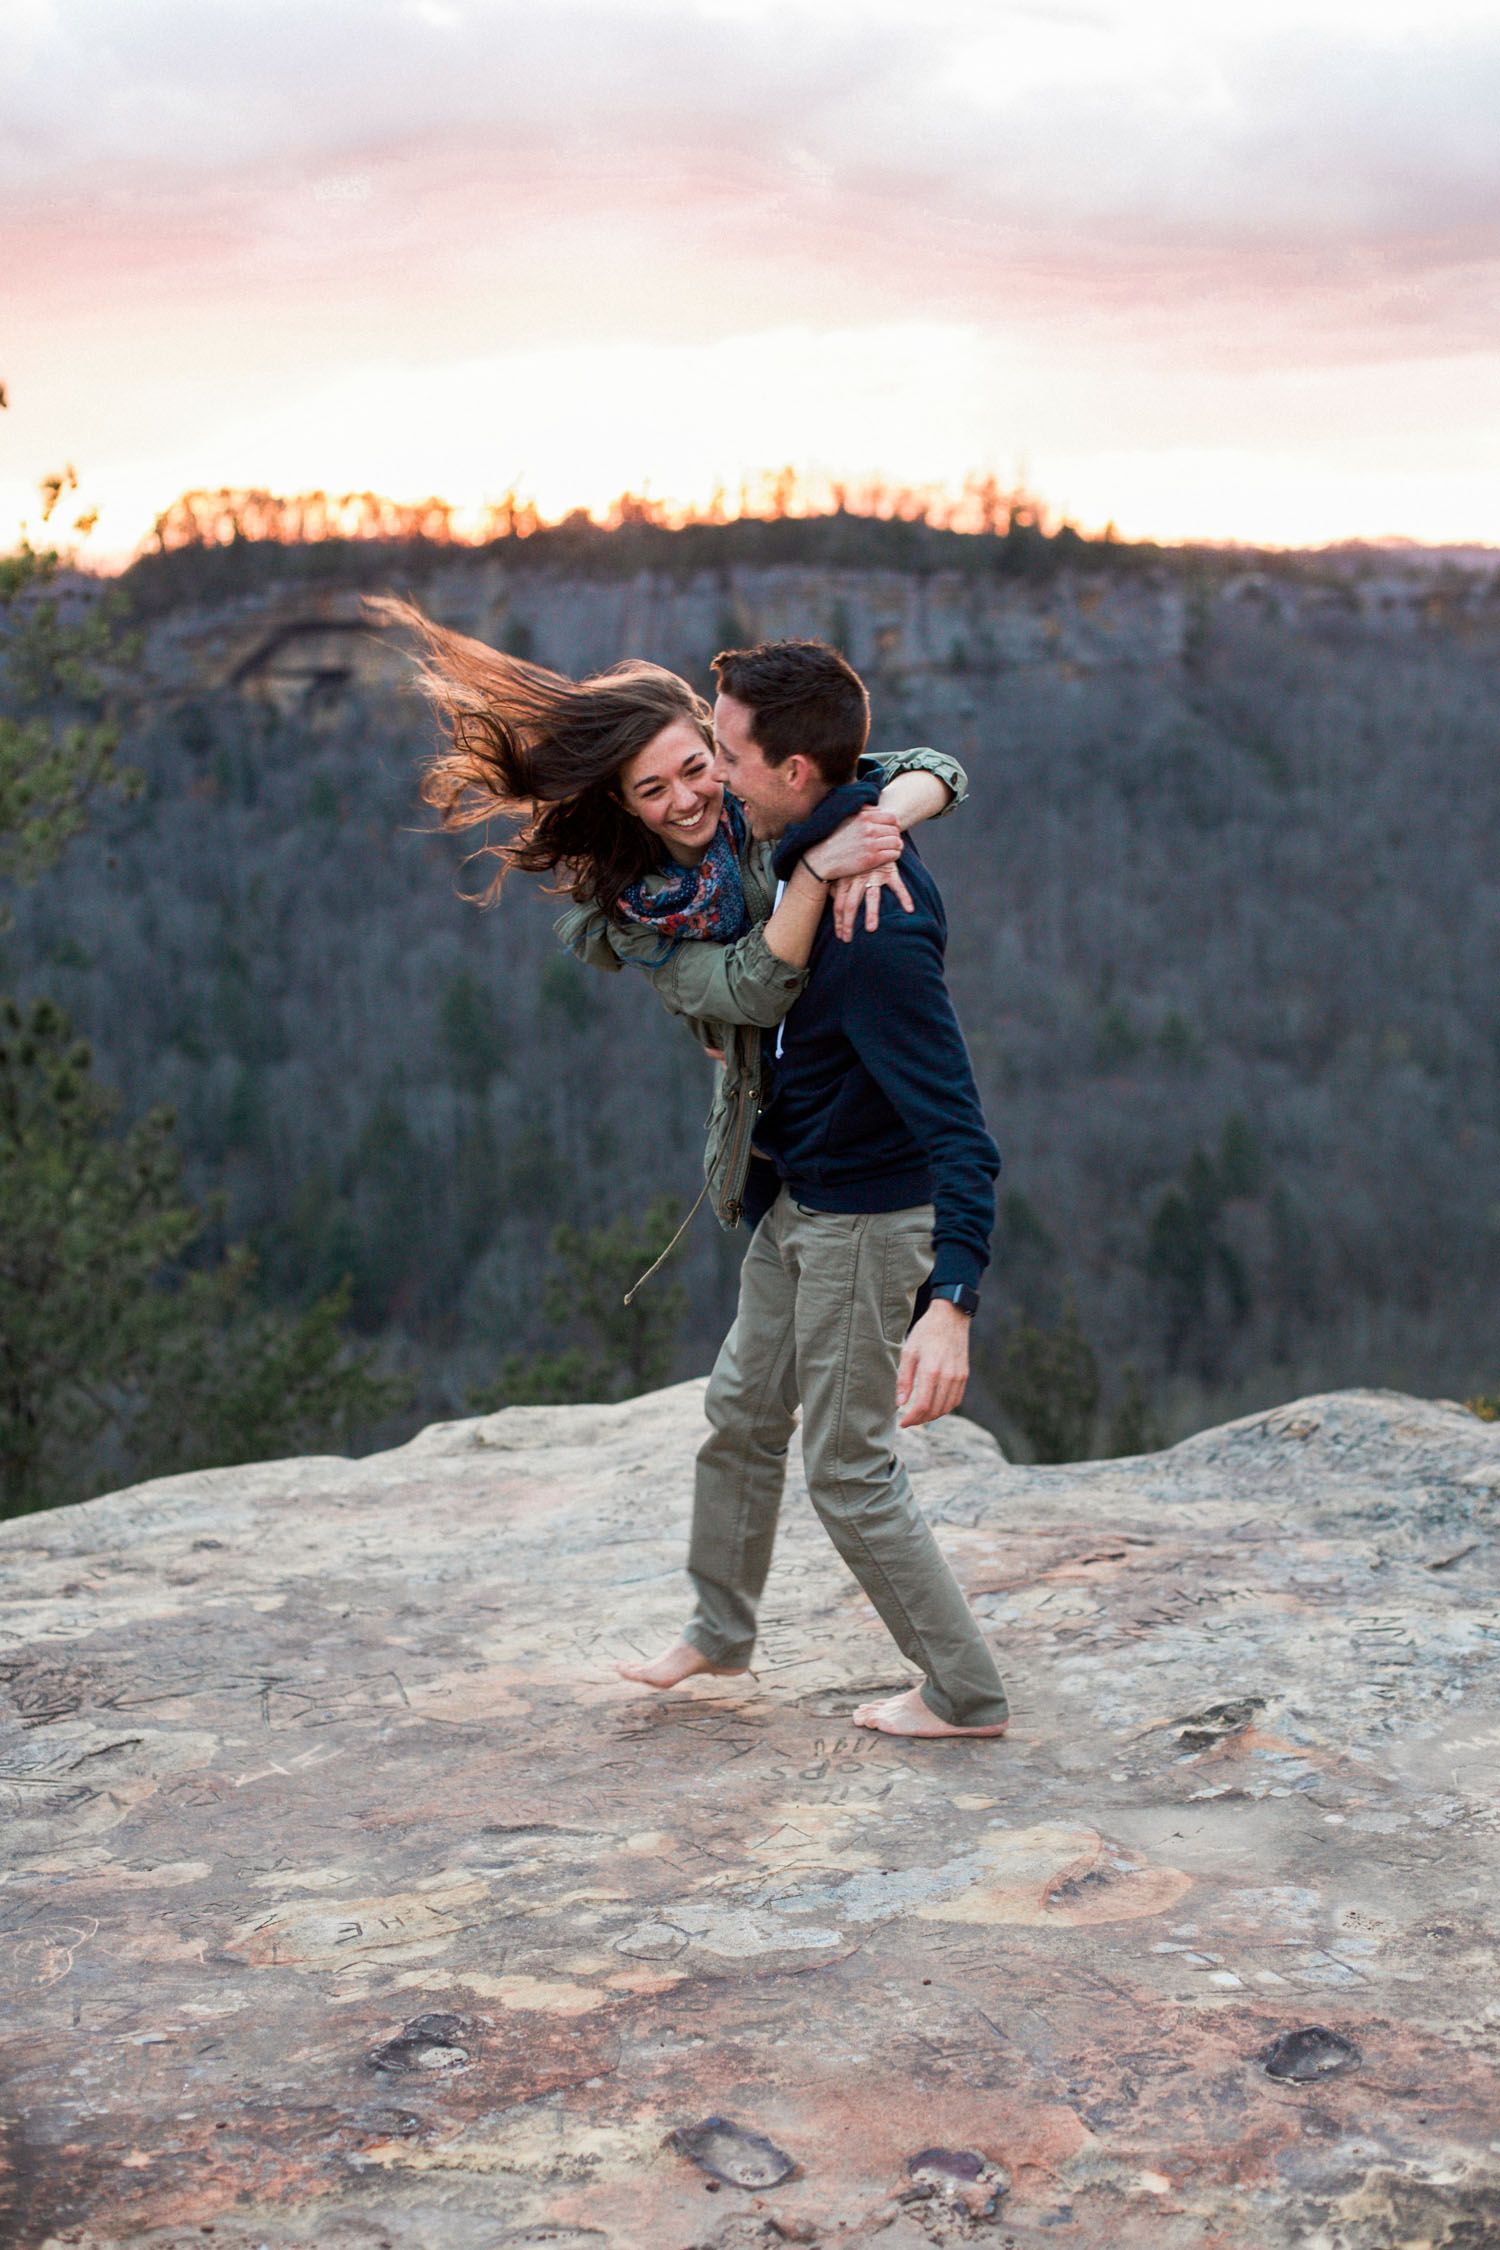 Dustin + Gabi Engagement Photo Shoot - Red River Gorge KY Engagement Photo Shoot (13 of 20).jpg